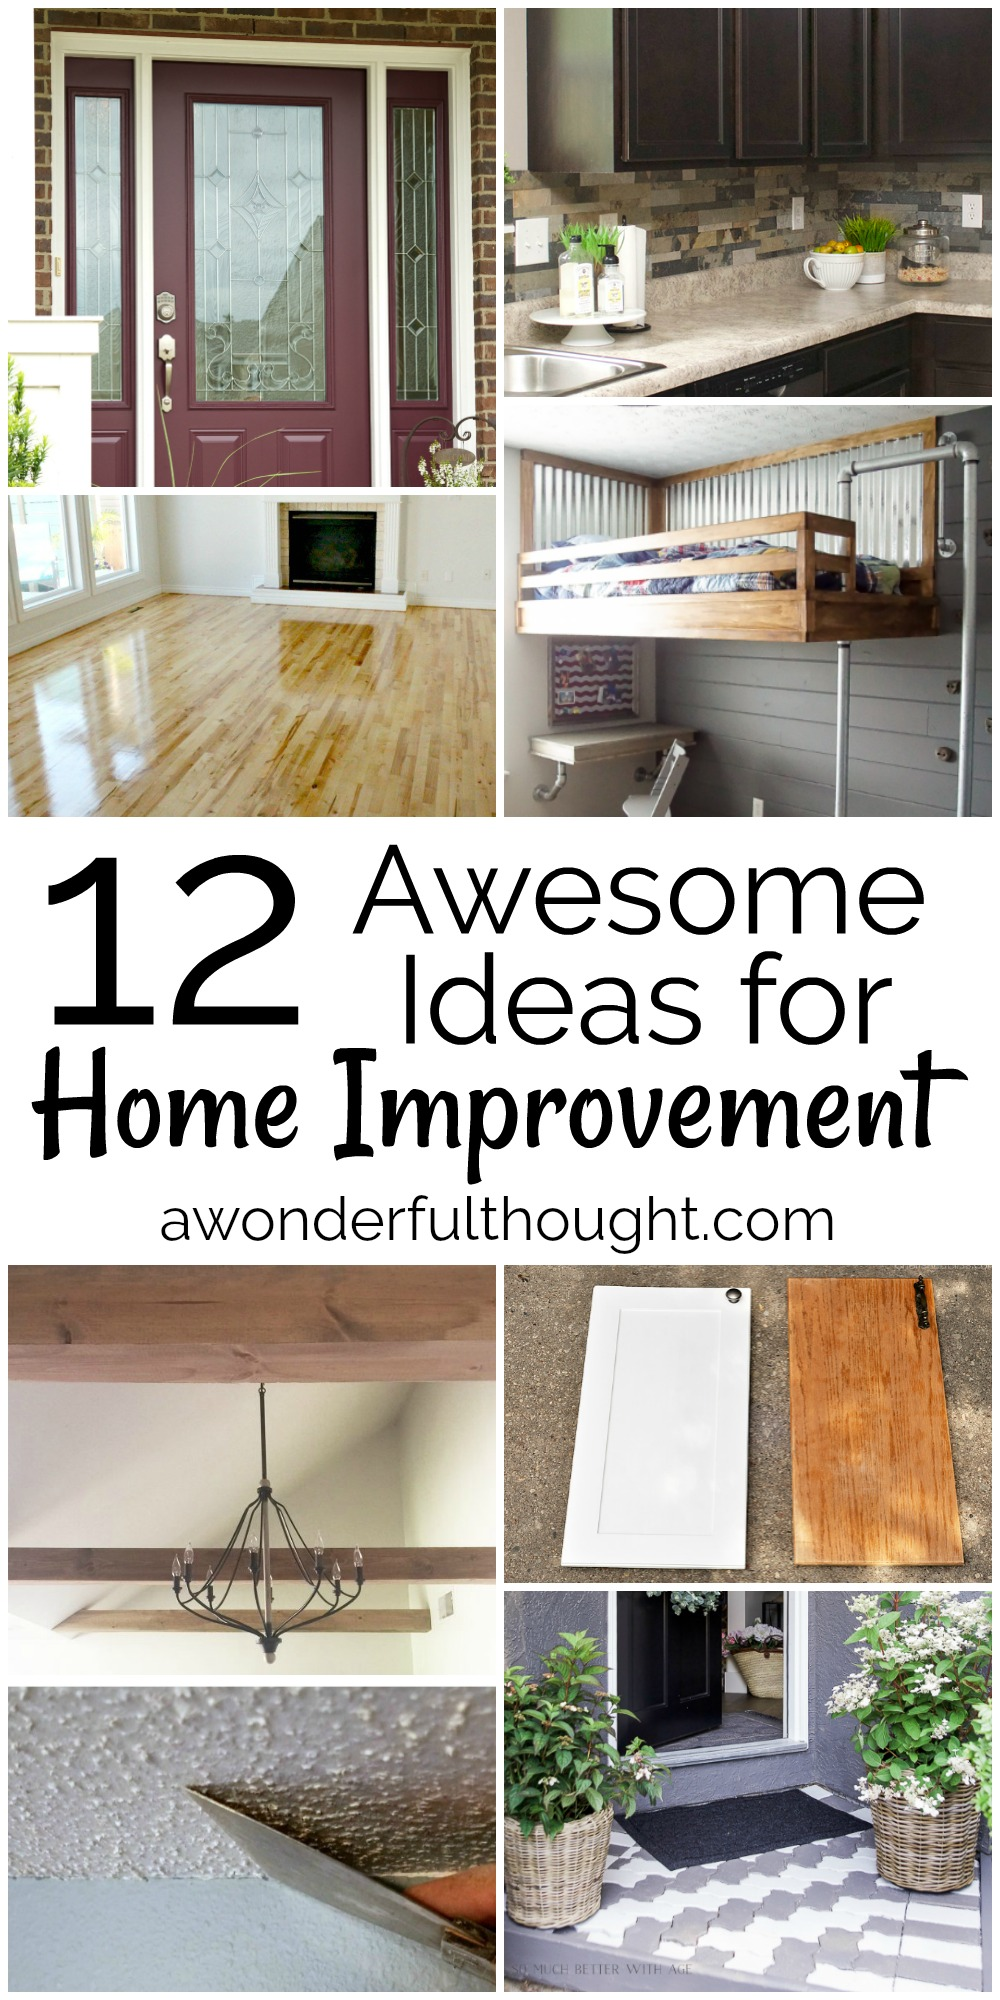 12 awesome home improvement ideas Home improvement ideas